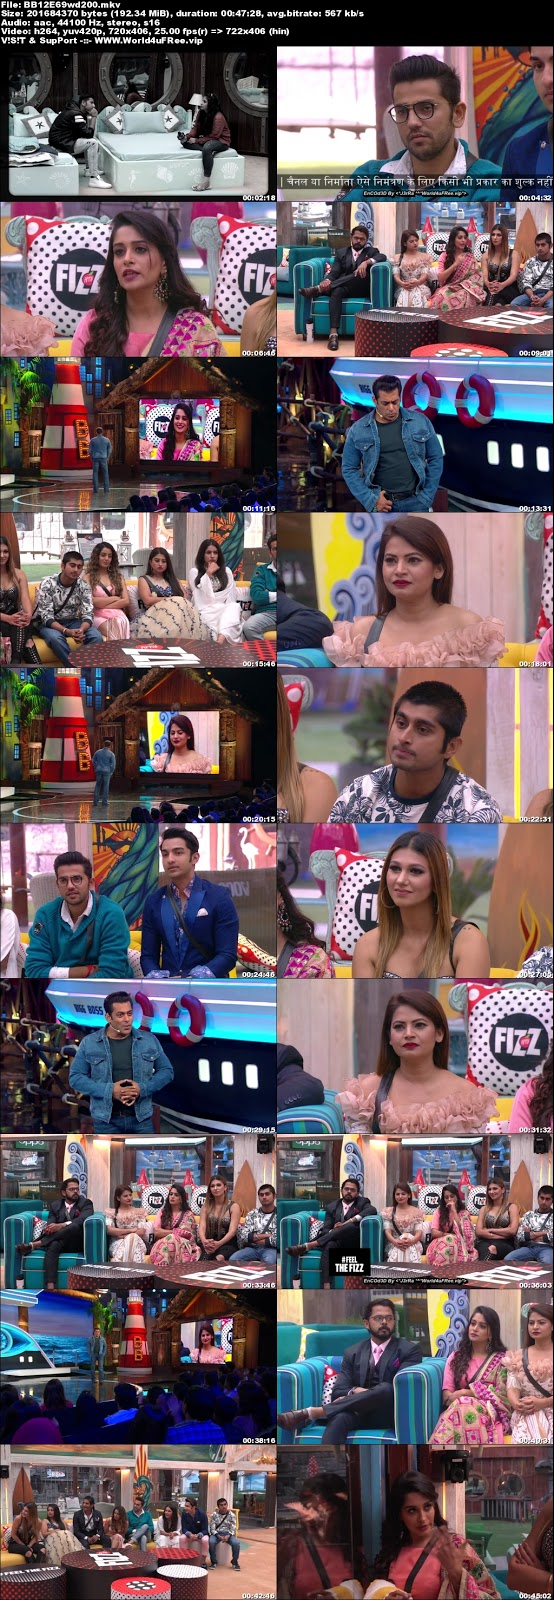 Bigg Boss 12 Episode 69 24 November 2018 WEBRip 480p 200Mb x264 world4ufree.vip tv show Bigg Boss 12 download Episode 69 24 November 2018 world4ufree.vip 200mb compressed small size free download or watch online at world4ufree.vip